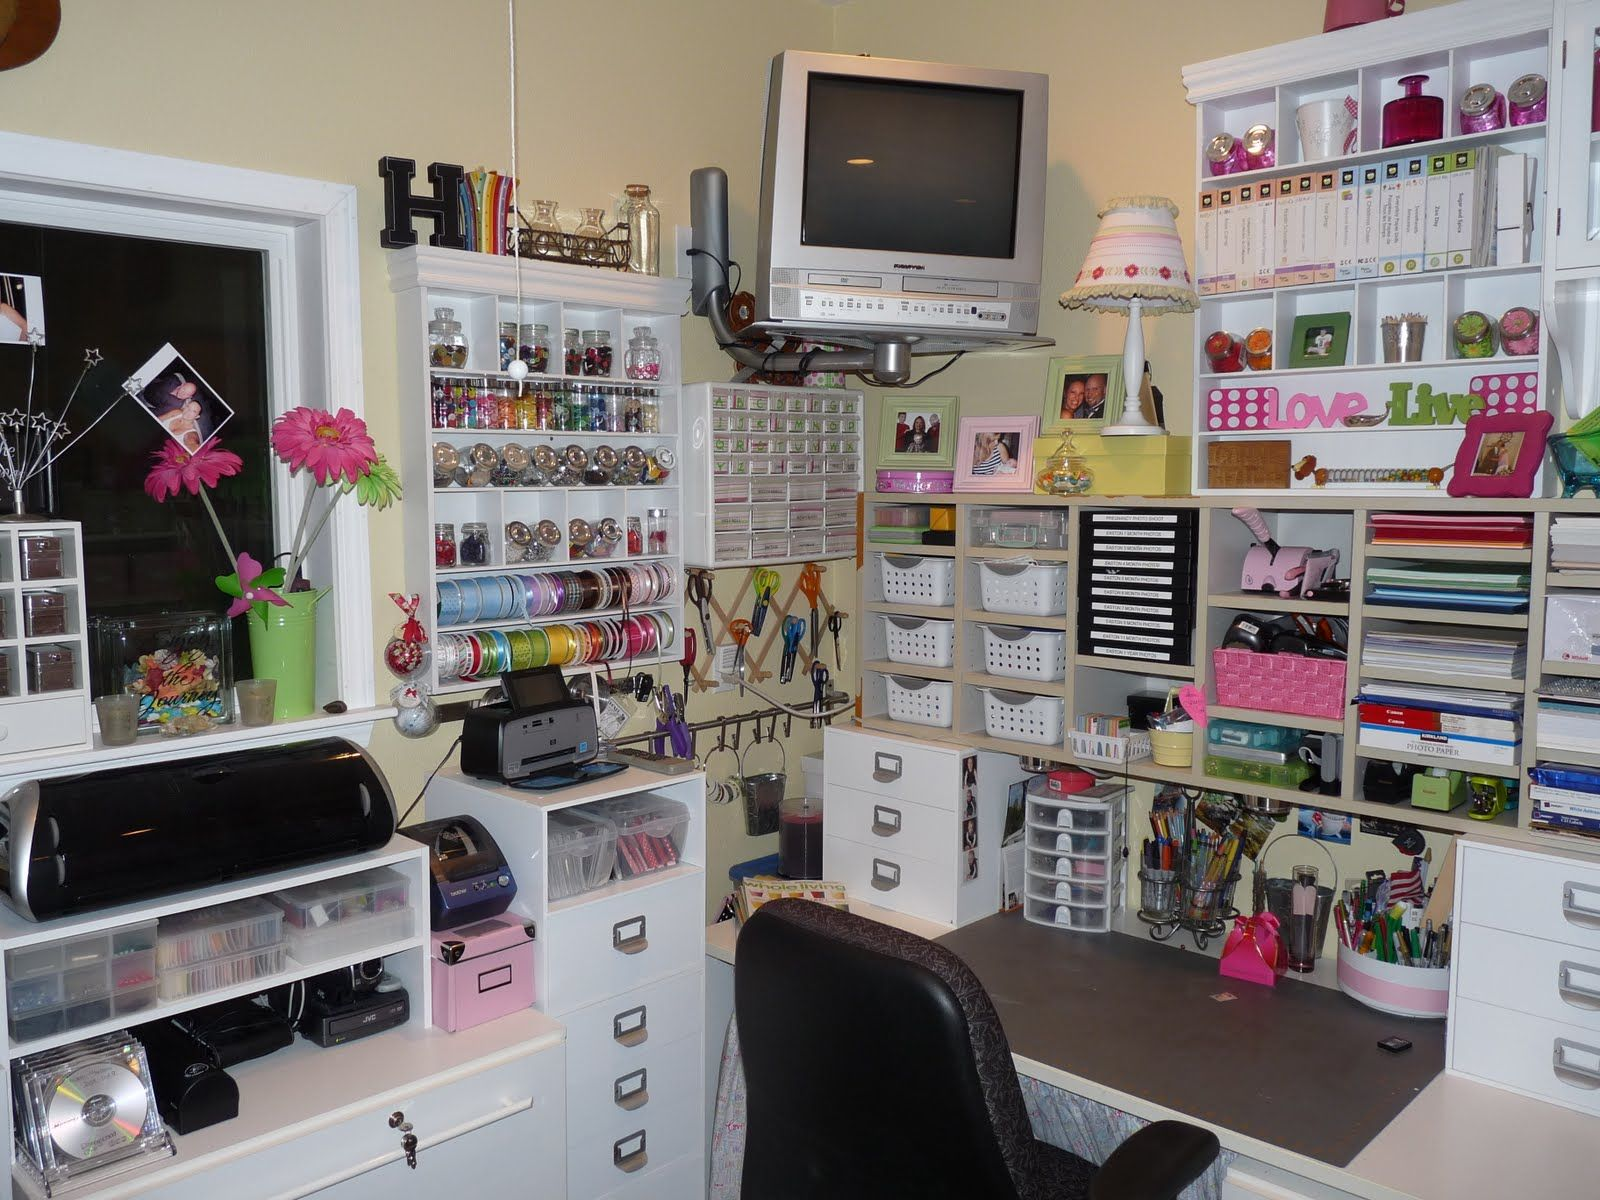 Scrapbook Room Design Ideas Part - 15: Scrapbooking Rooms Pictures And Ideas | Looking At My Room From Entry To  The Left.